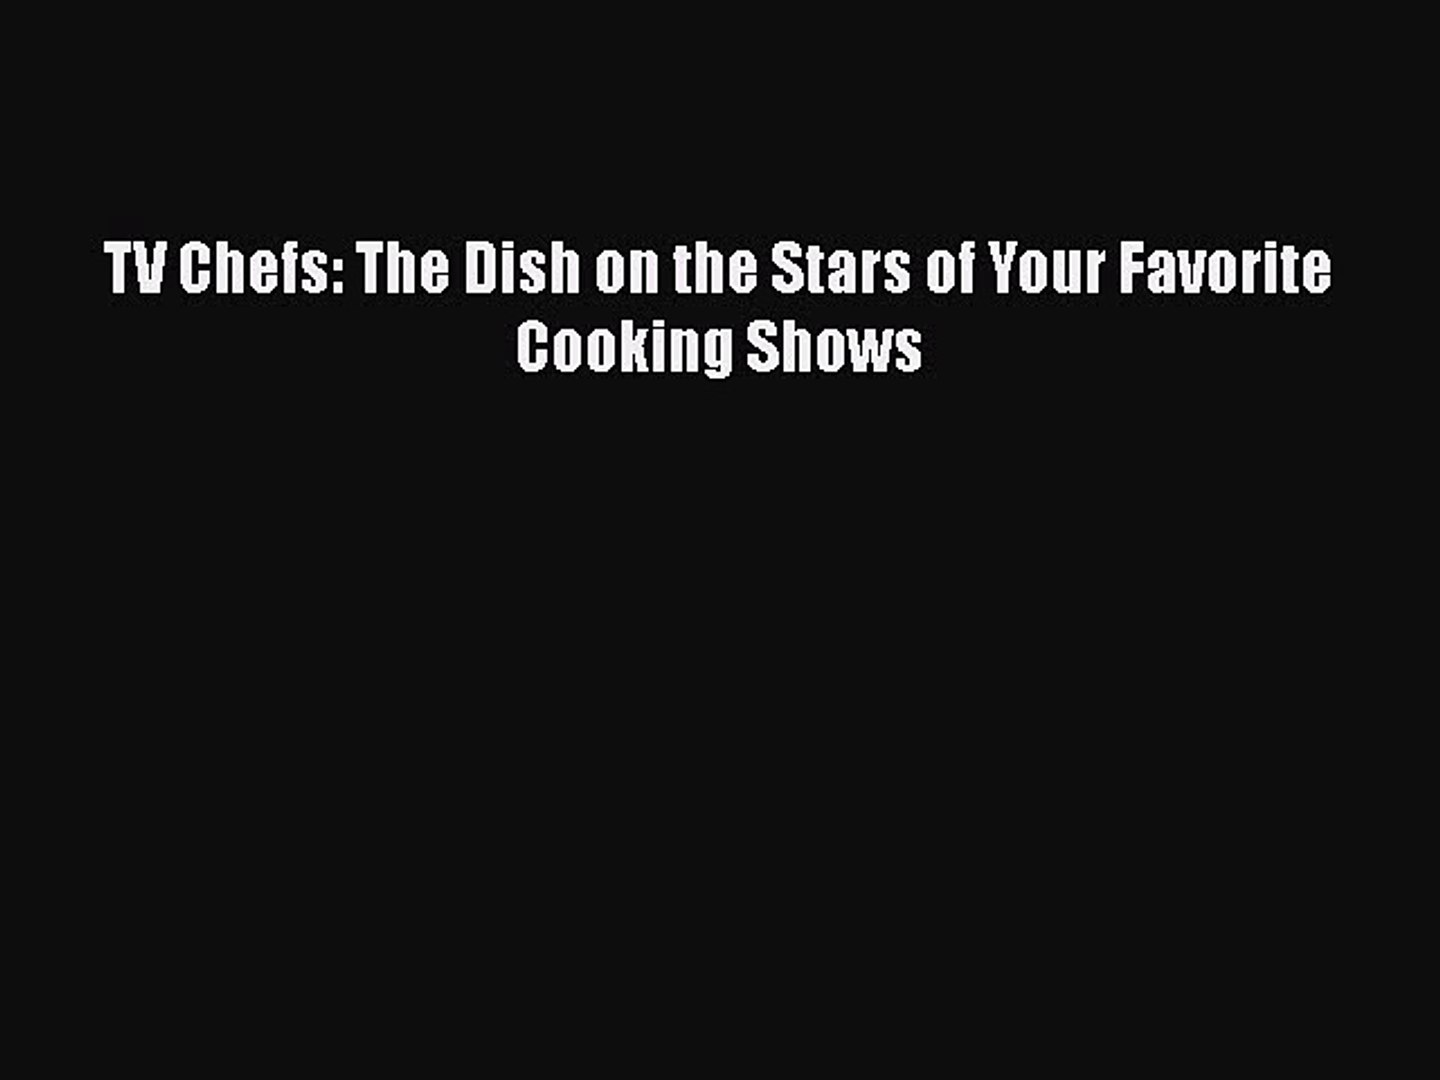 Read Books TV Chefs: The Dish on the Stars of Your Favorite Cooking Shows ebook textbooks